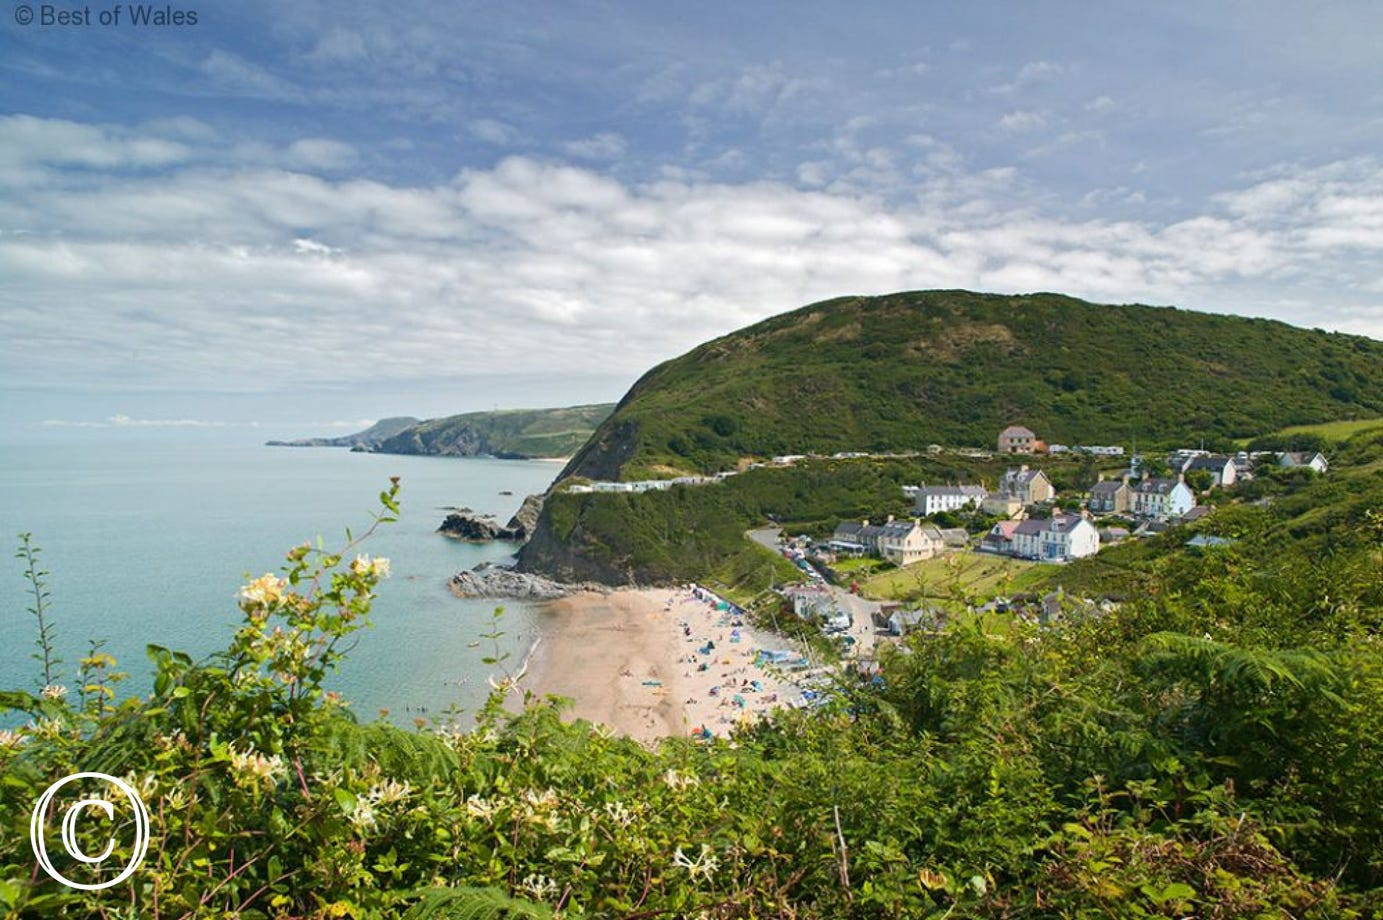 Tresaith is one of the great beaches nearby